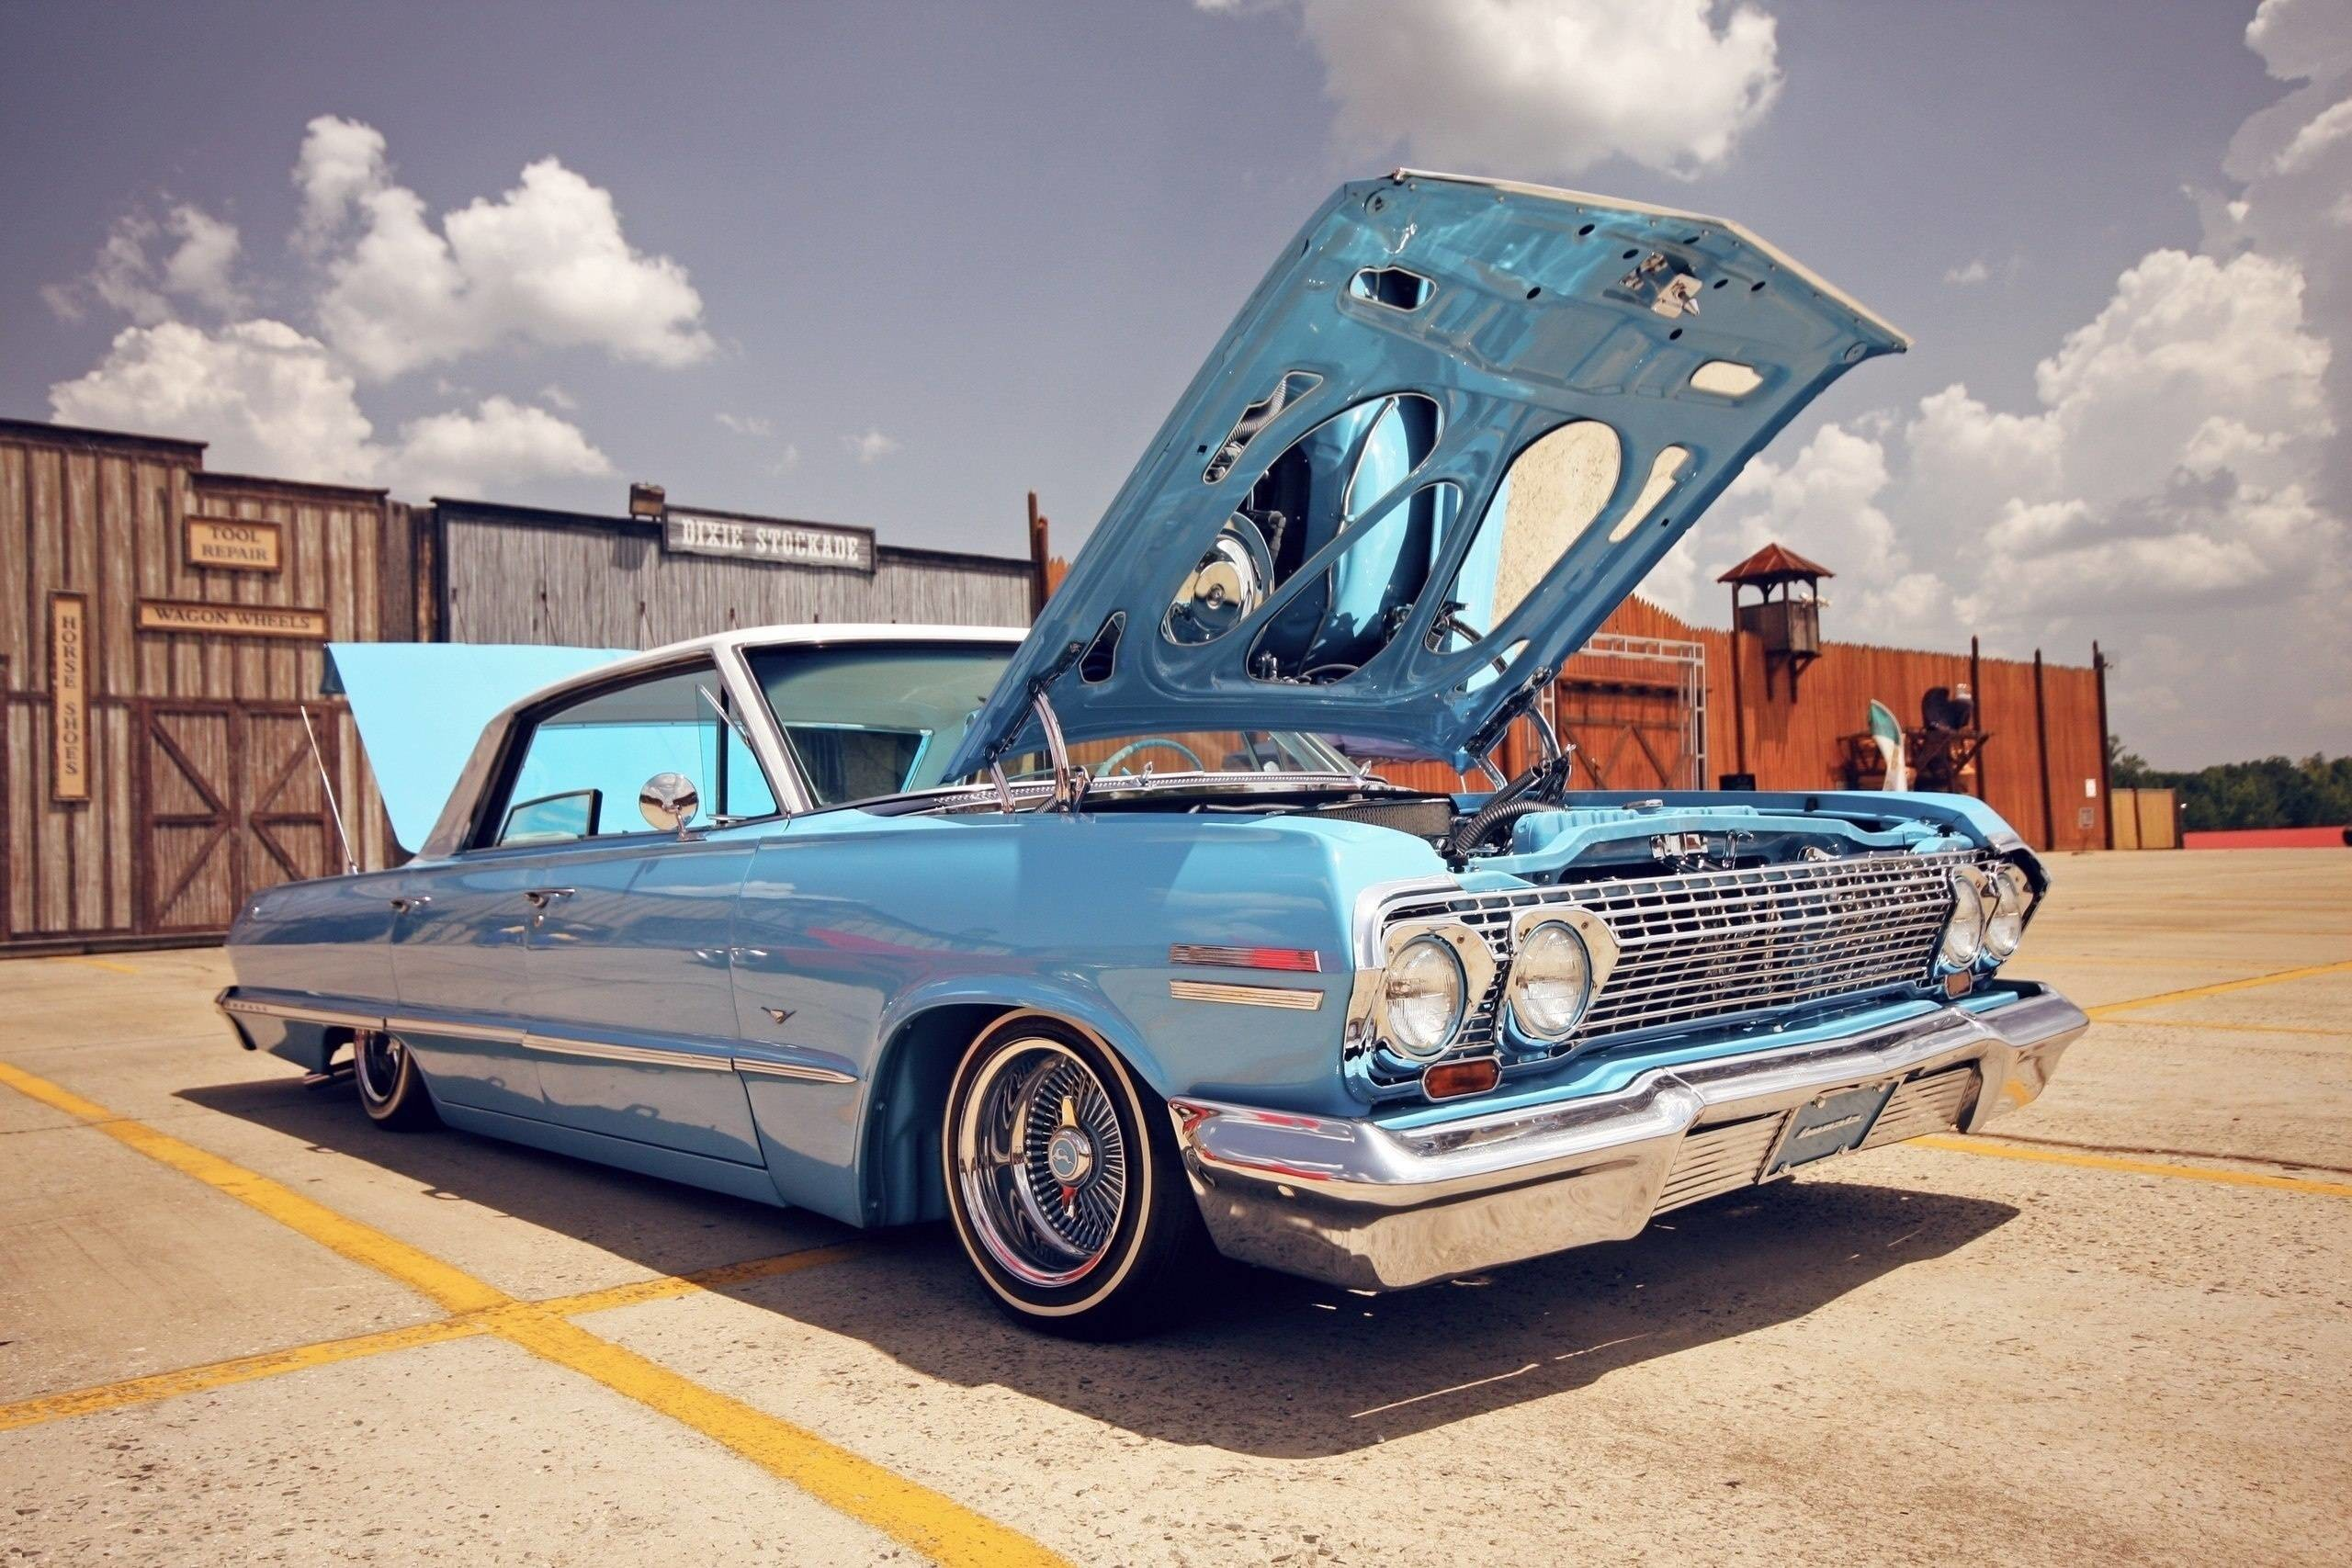 Chevrolet Impala Wallpapers (61+ images)